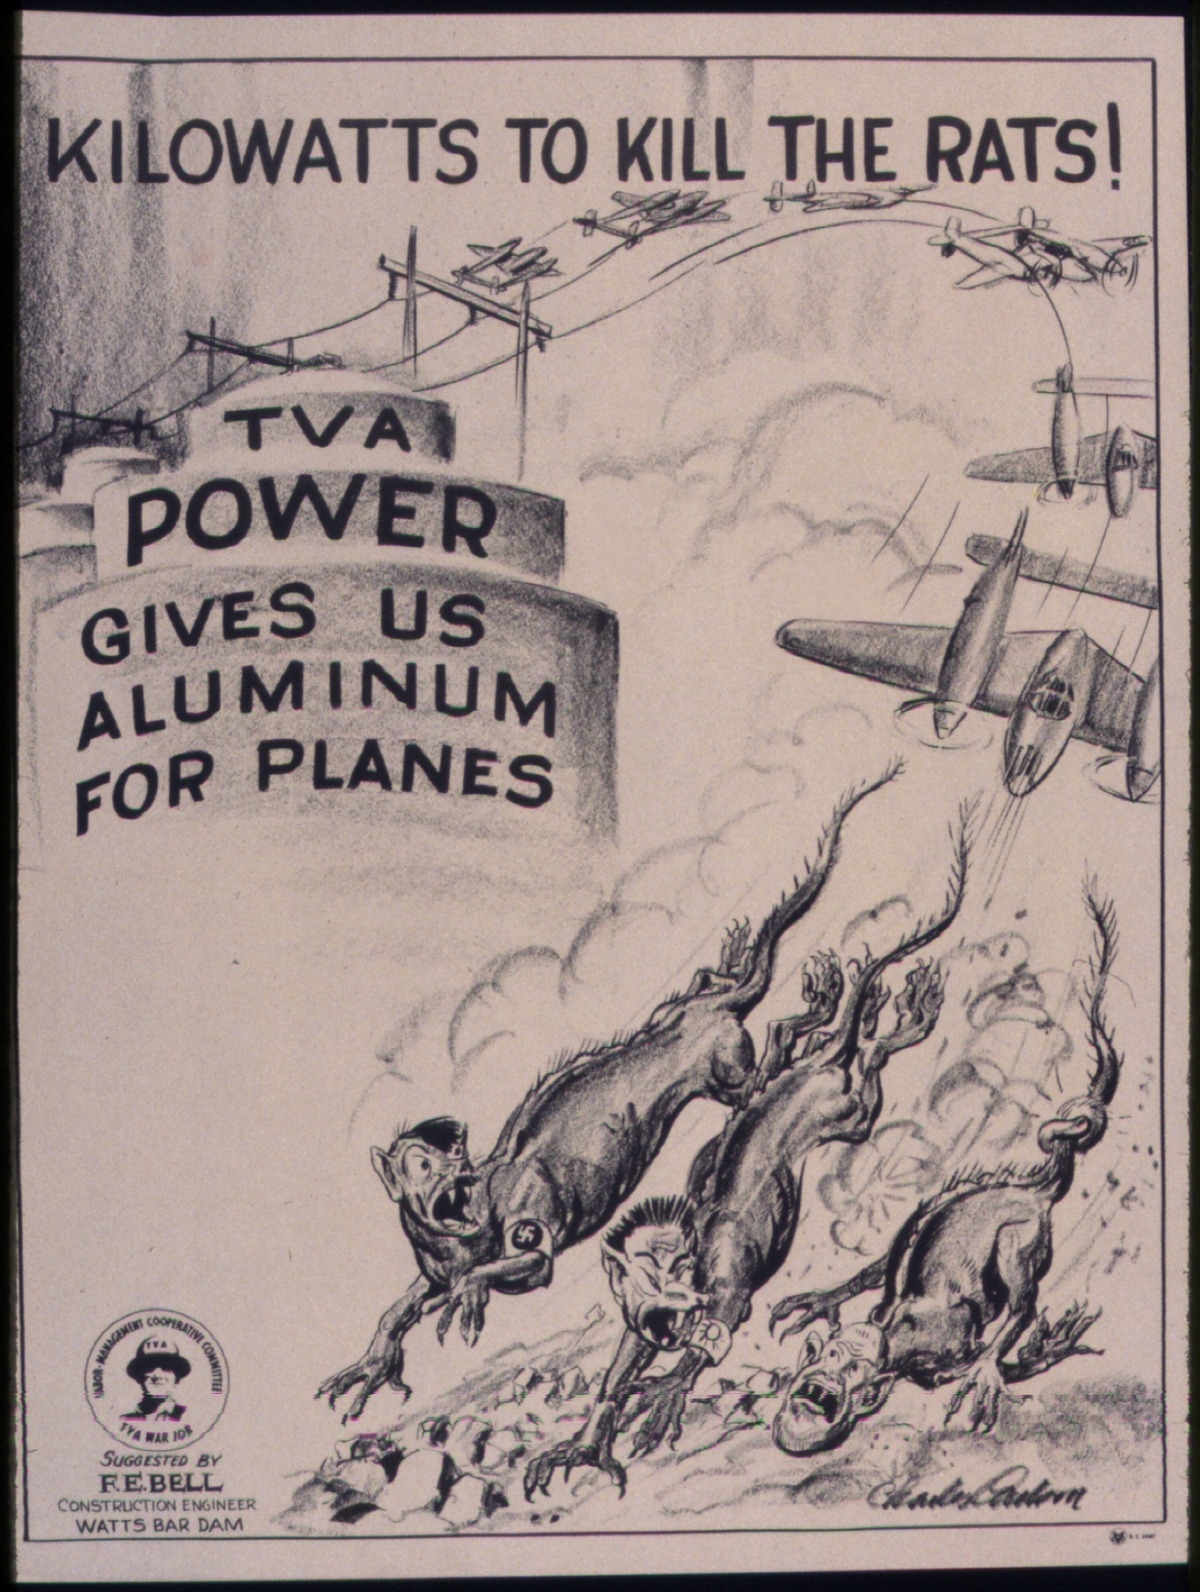 Kilowatts_to_kill_the_rats._TVA_power_gives_us_aluminum_for_planes._-_NARA_-_534827